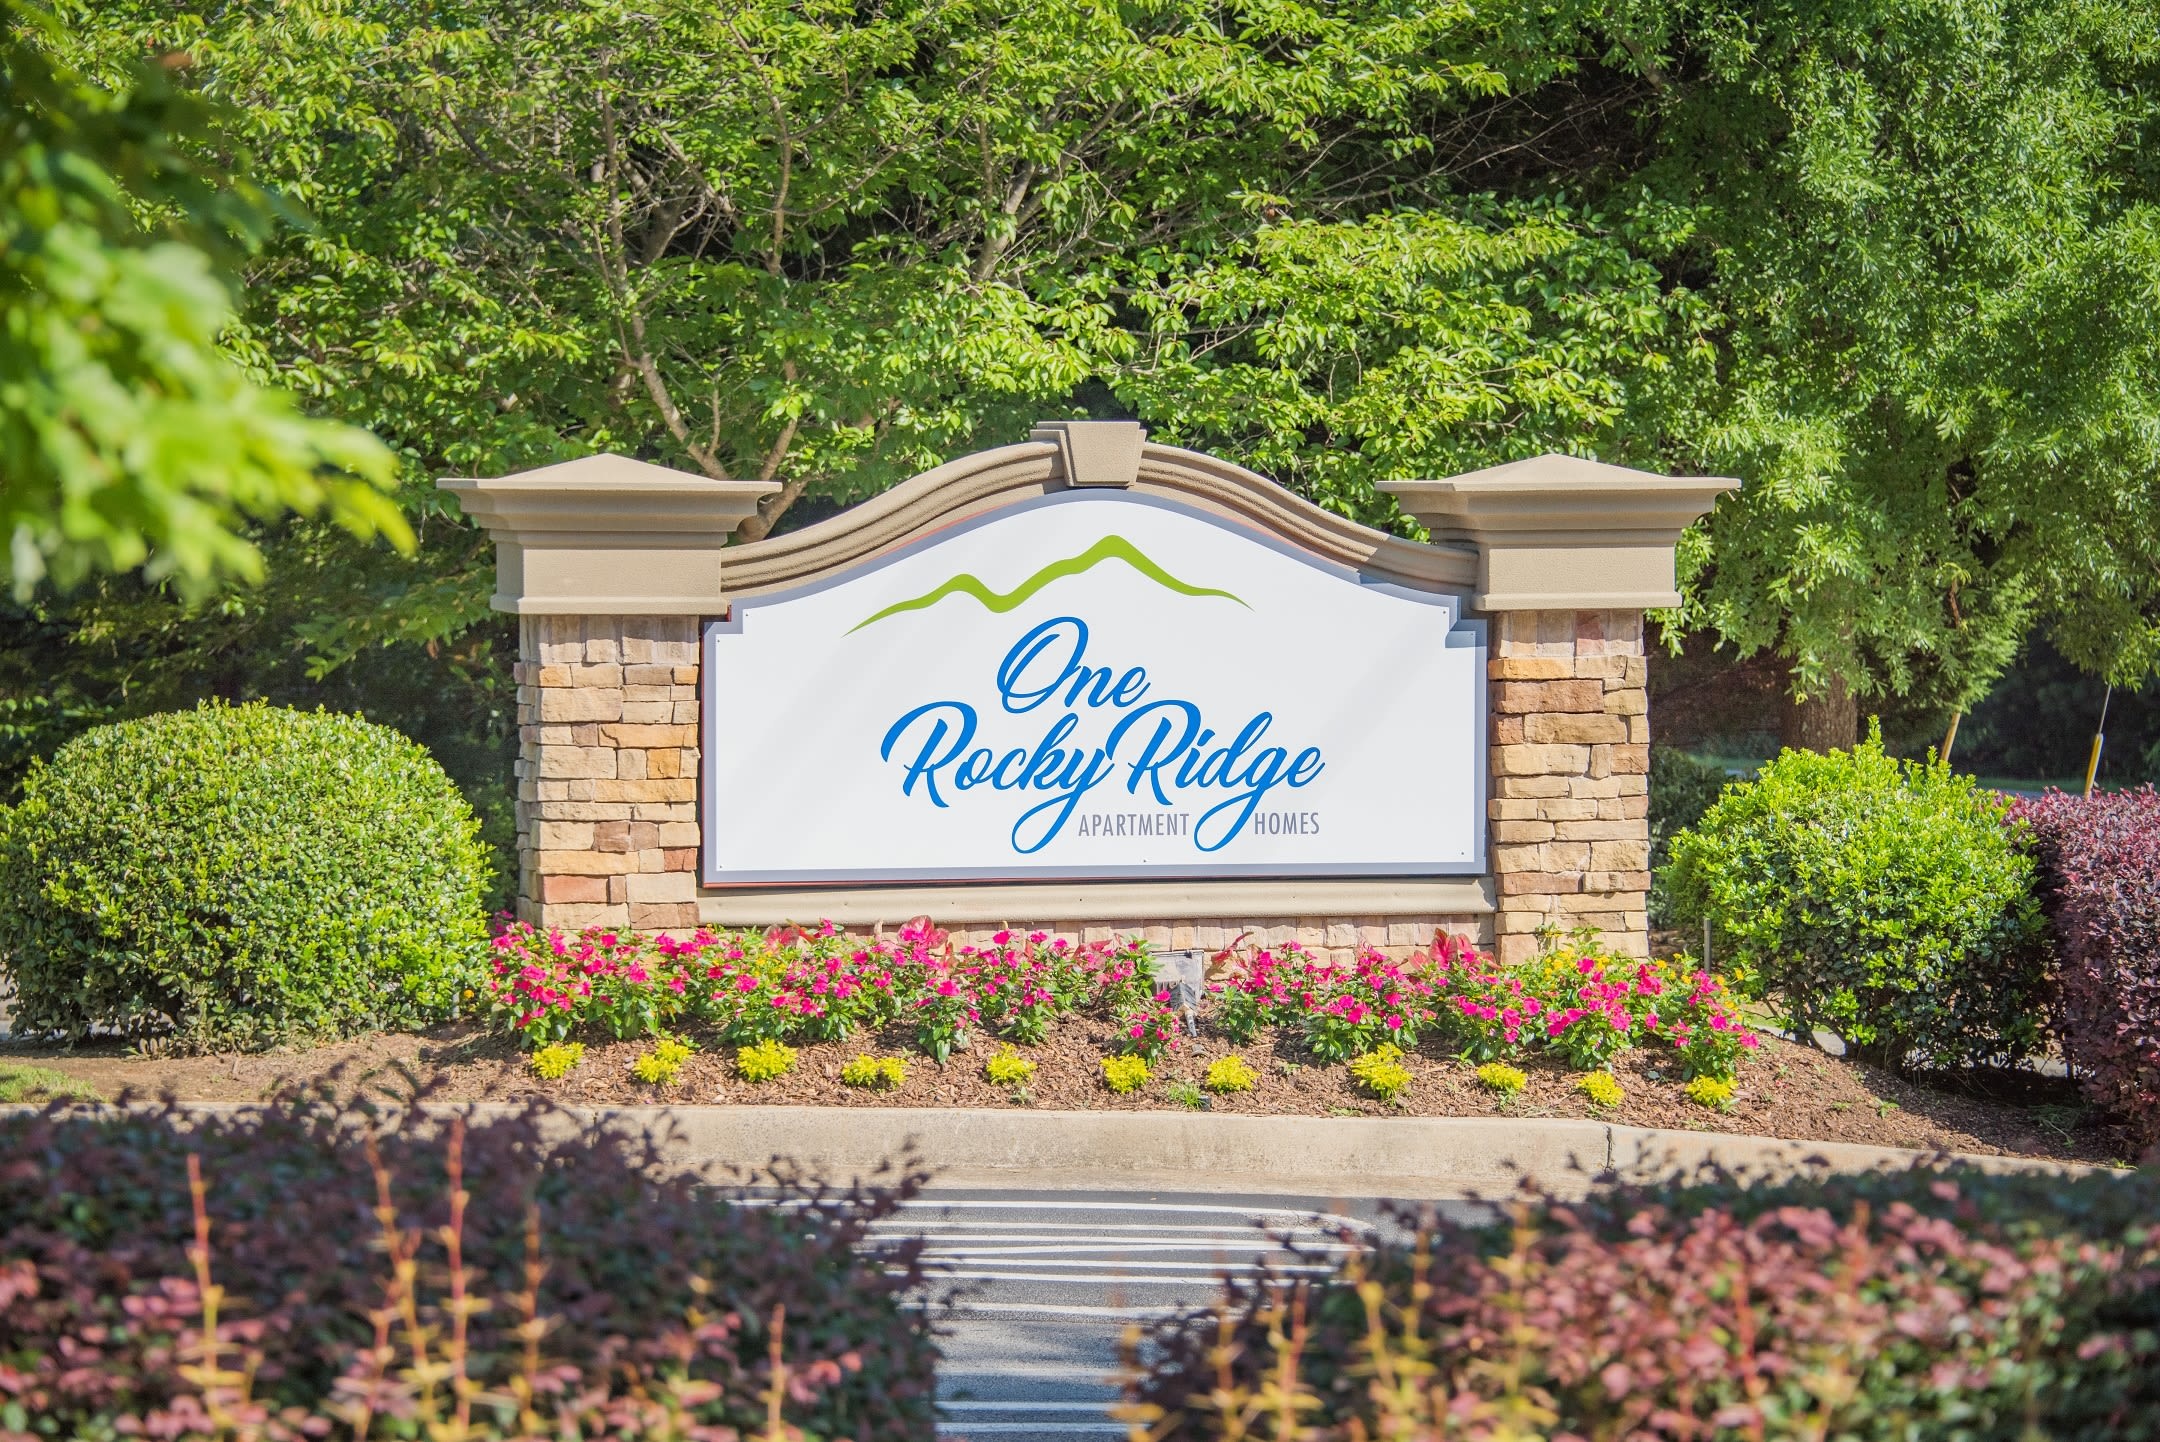 Main sign at One Rocky Ridge Apartment Homes in Douglasville, Georgia